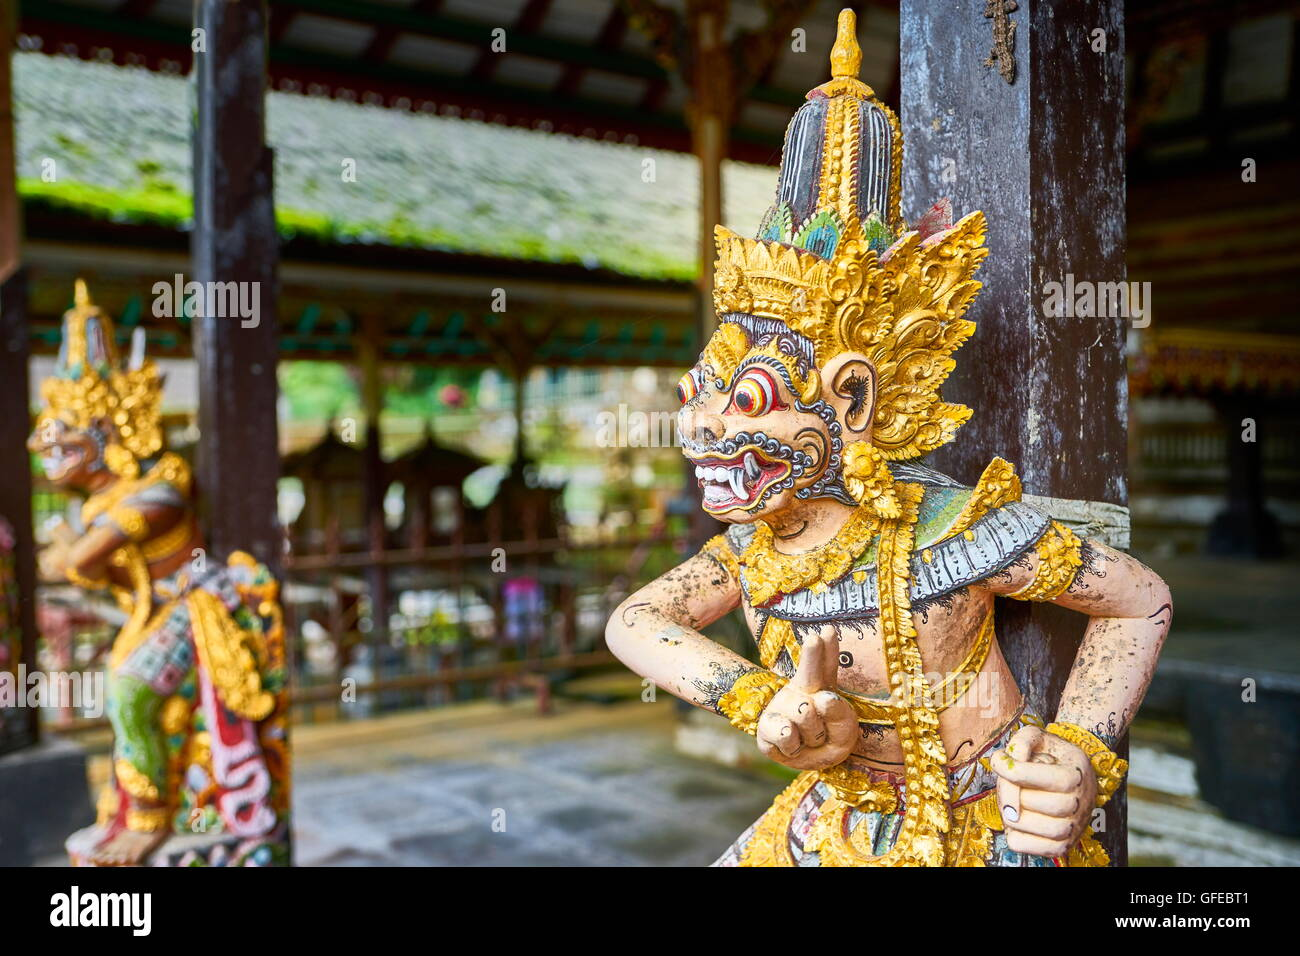 God statue at Pura Gunung Kawi Temple, Bali, Indonesia - Stock Image